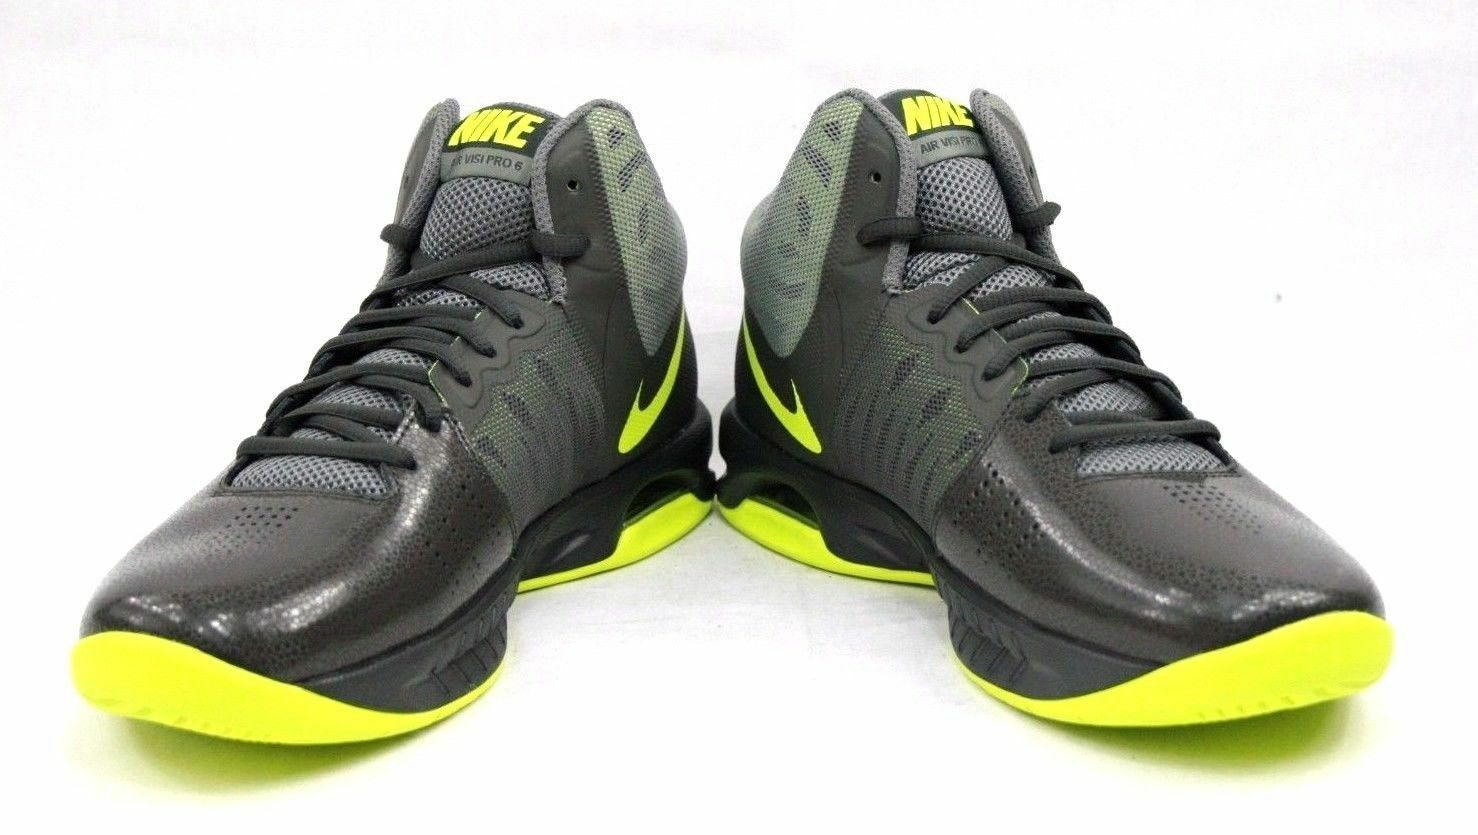 e3d088a77d Nike Men's Air Visi Pro VI Basketball shoes 749167-200 SZ 10 Athletic  nwebxn4155-Athletic Shoes